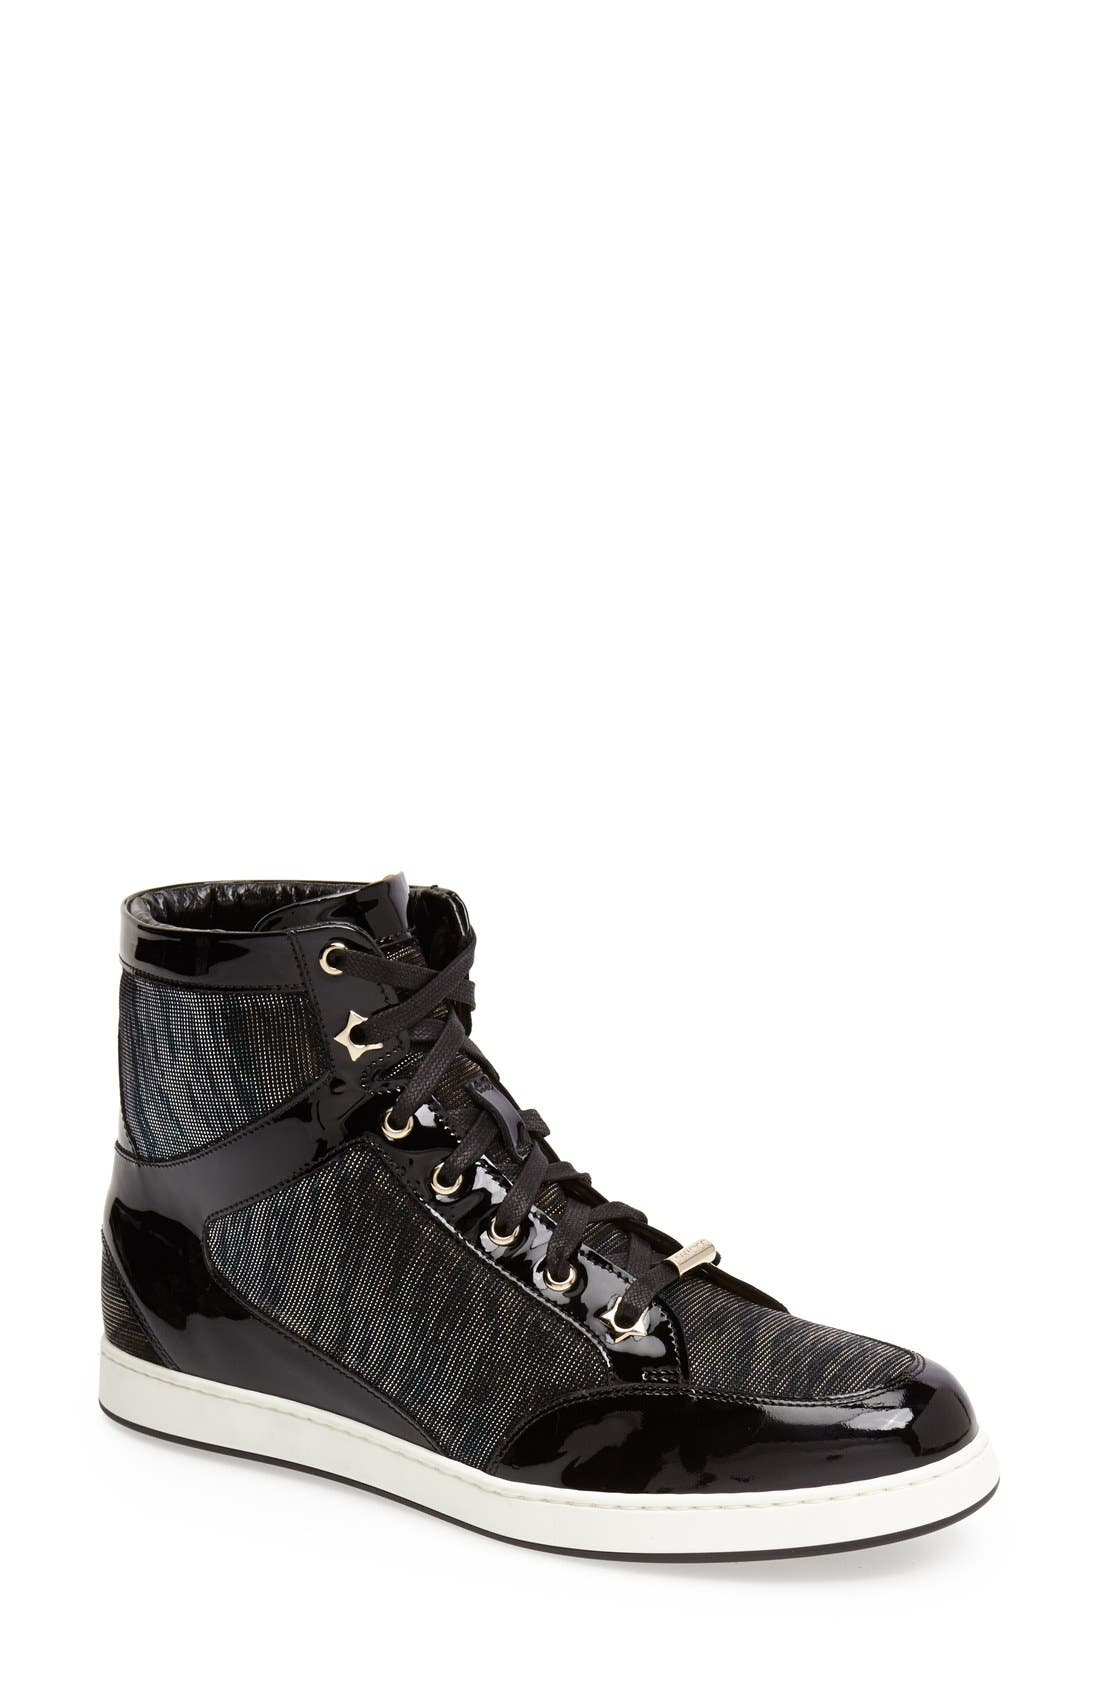 Alternate Image 1 Selected - Jimmy Choo 'Tokyo' High Top Sneaker (Women)